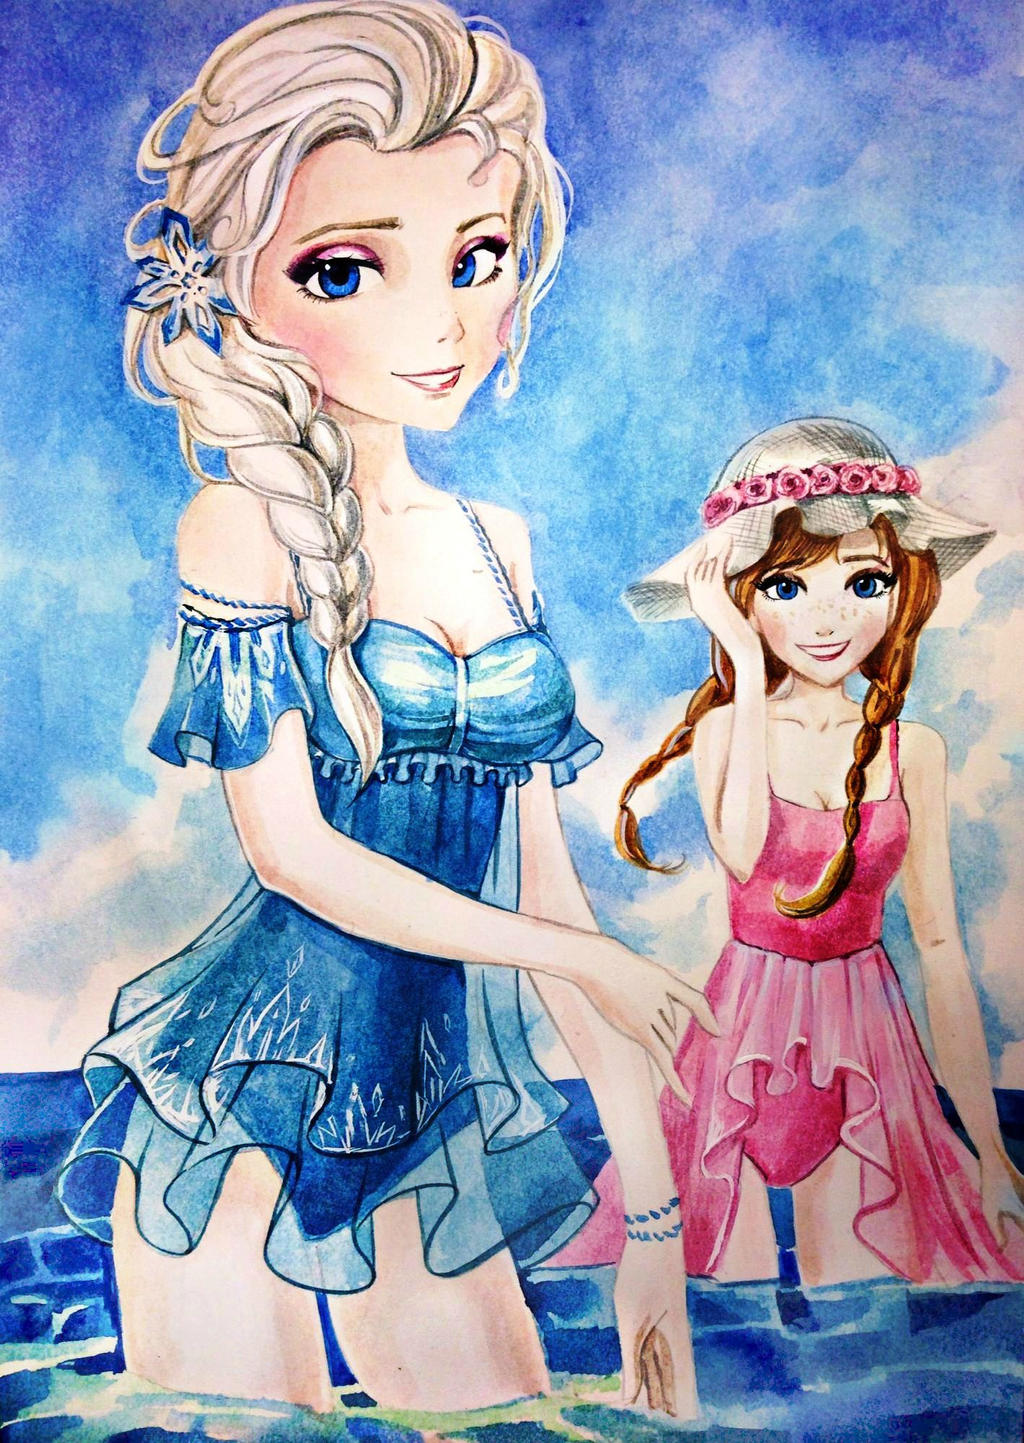 Elsa And Anna Swimsuit By AnALIBI On DeviantArt